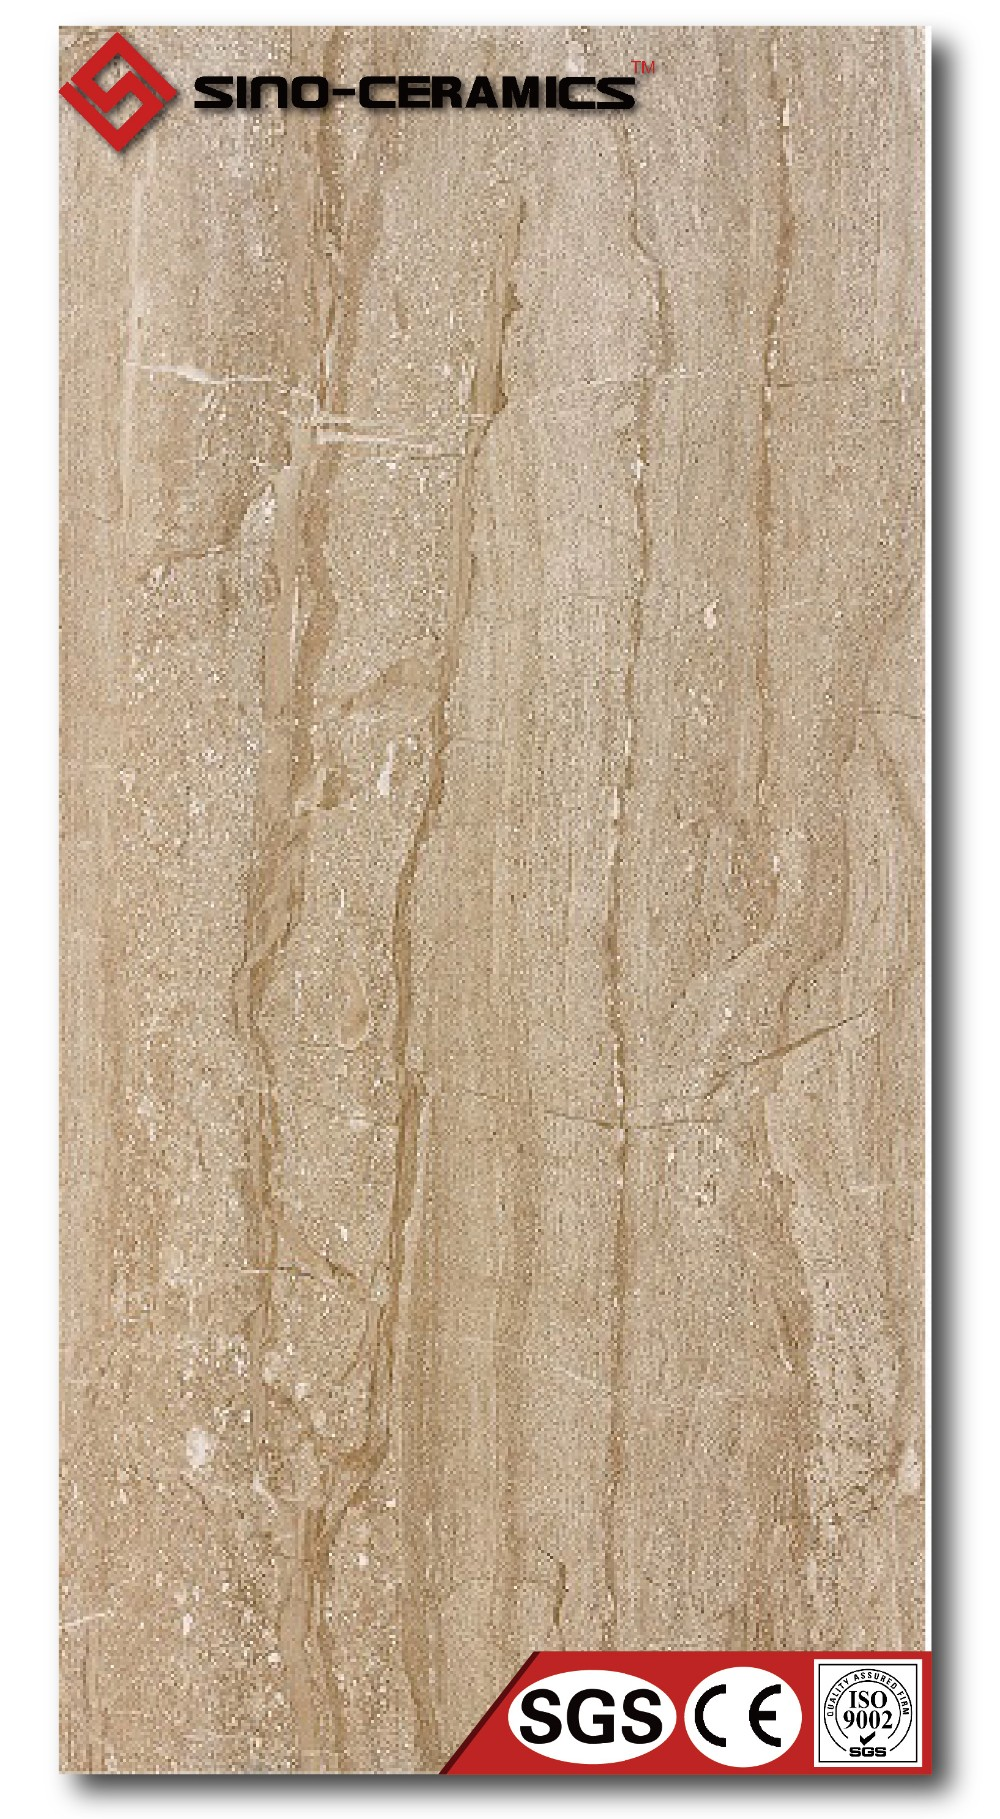 American style travertine look brown color glazed ceramic floor american style travertine look brown color glazed ceramic floor tiles 300x600mm12x24 doublecrazyfo Gallery